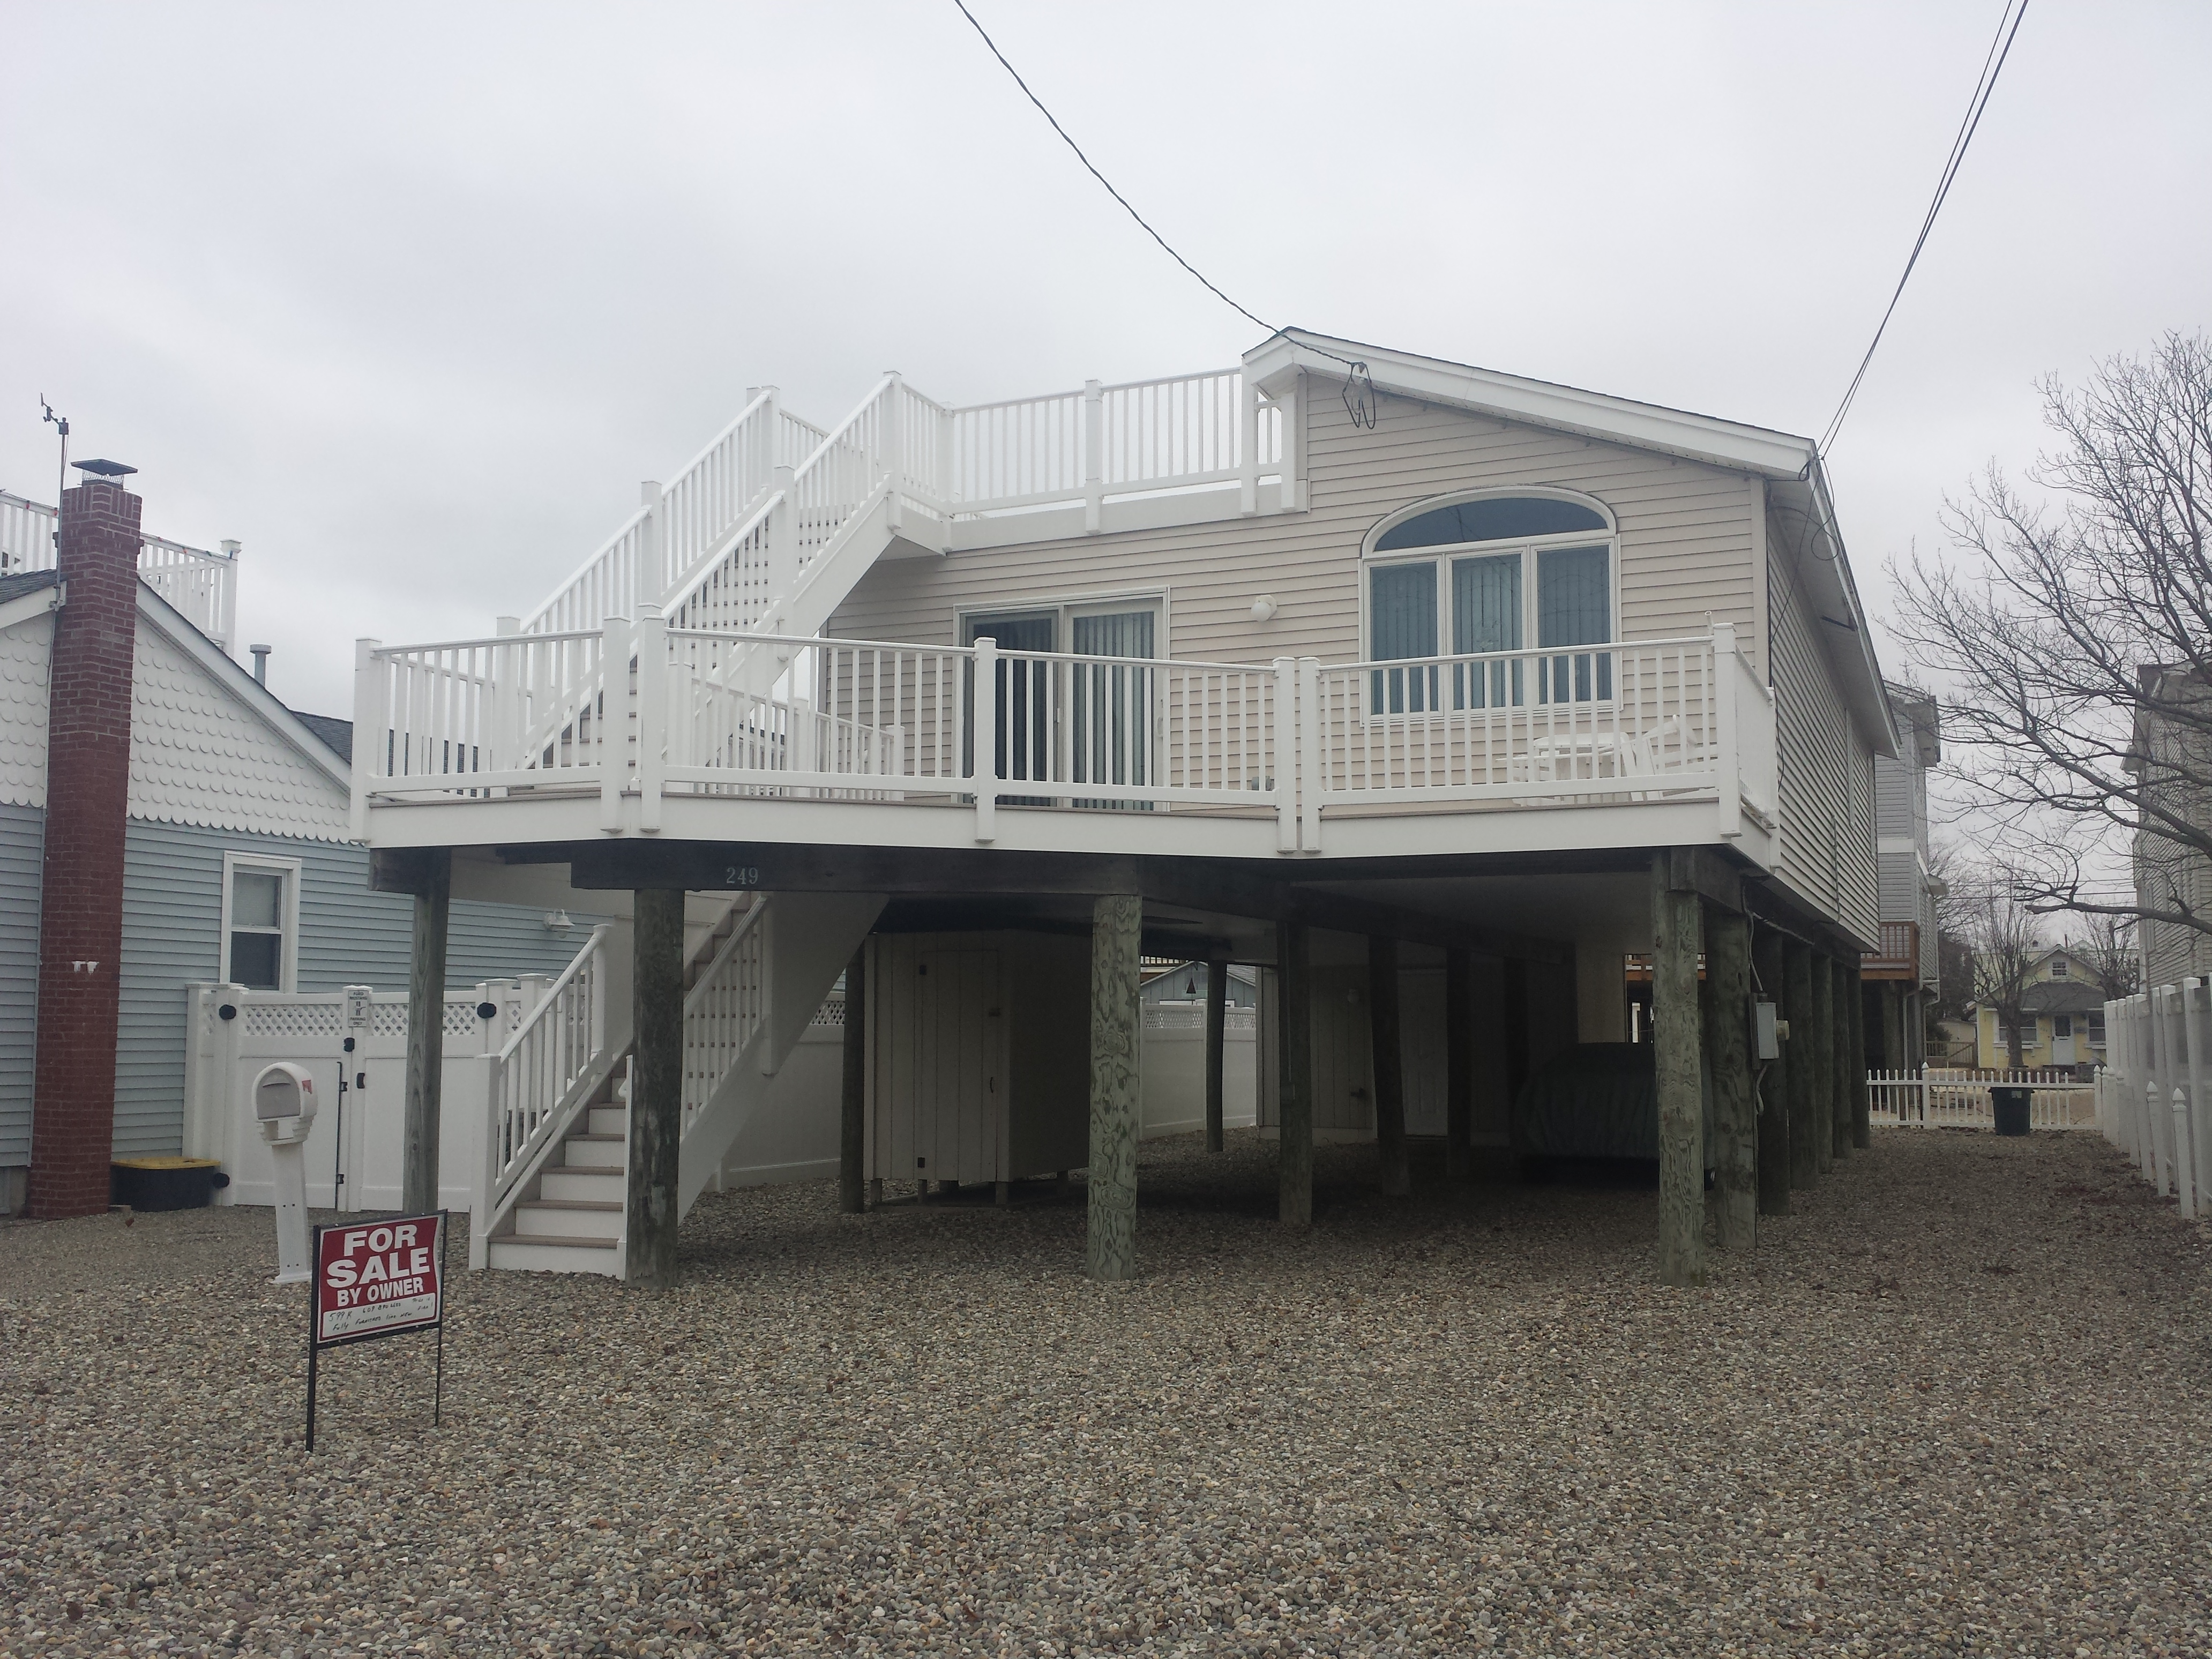 Lbi homes for sale by owner lbi fsbo long beach island nj for Home builders in south jersey